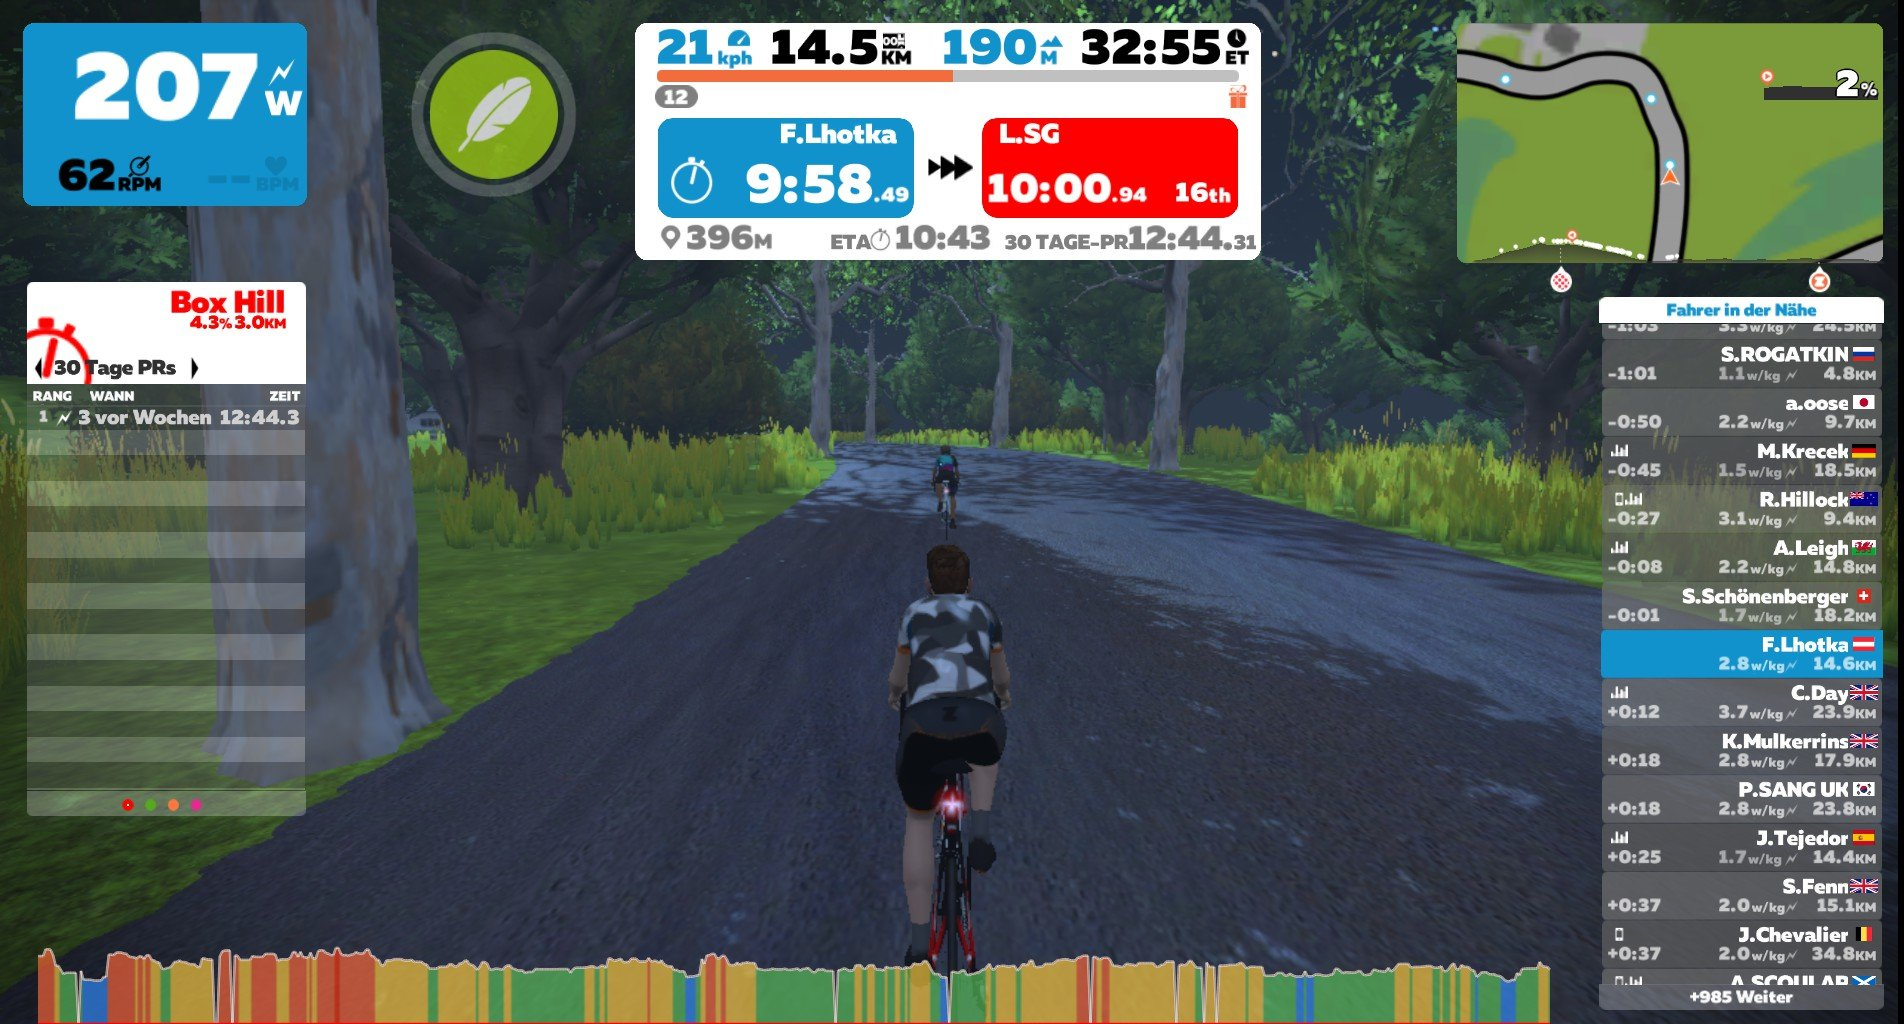 ZWIFT - Langweiliges Indoor-Training war gestern